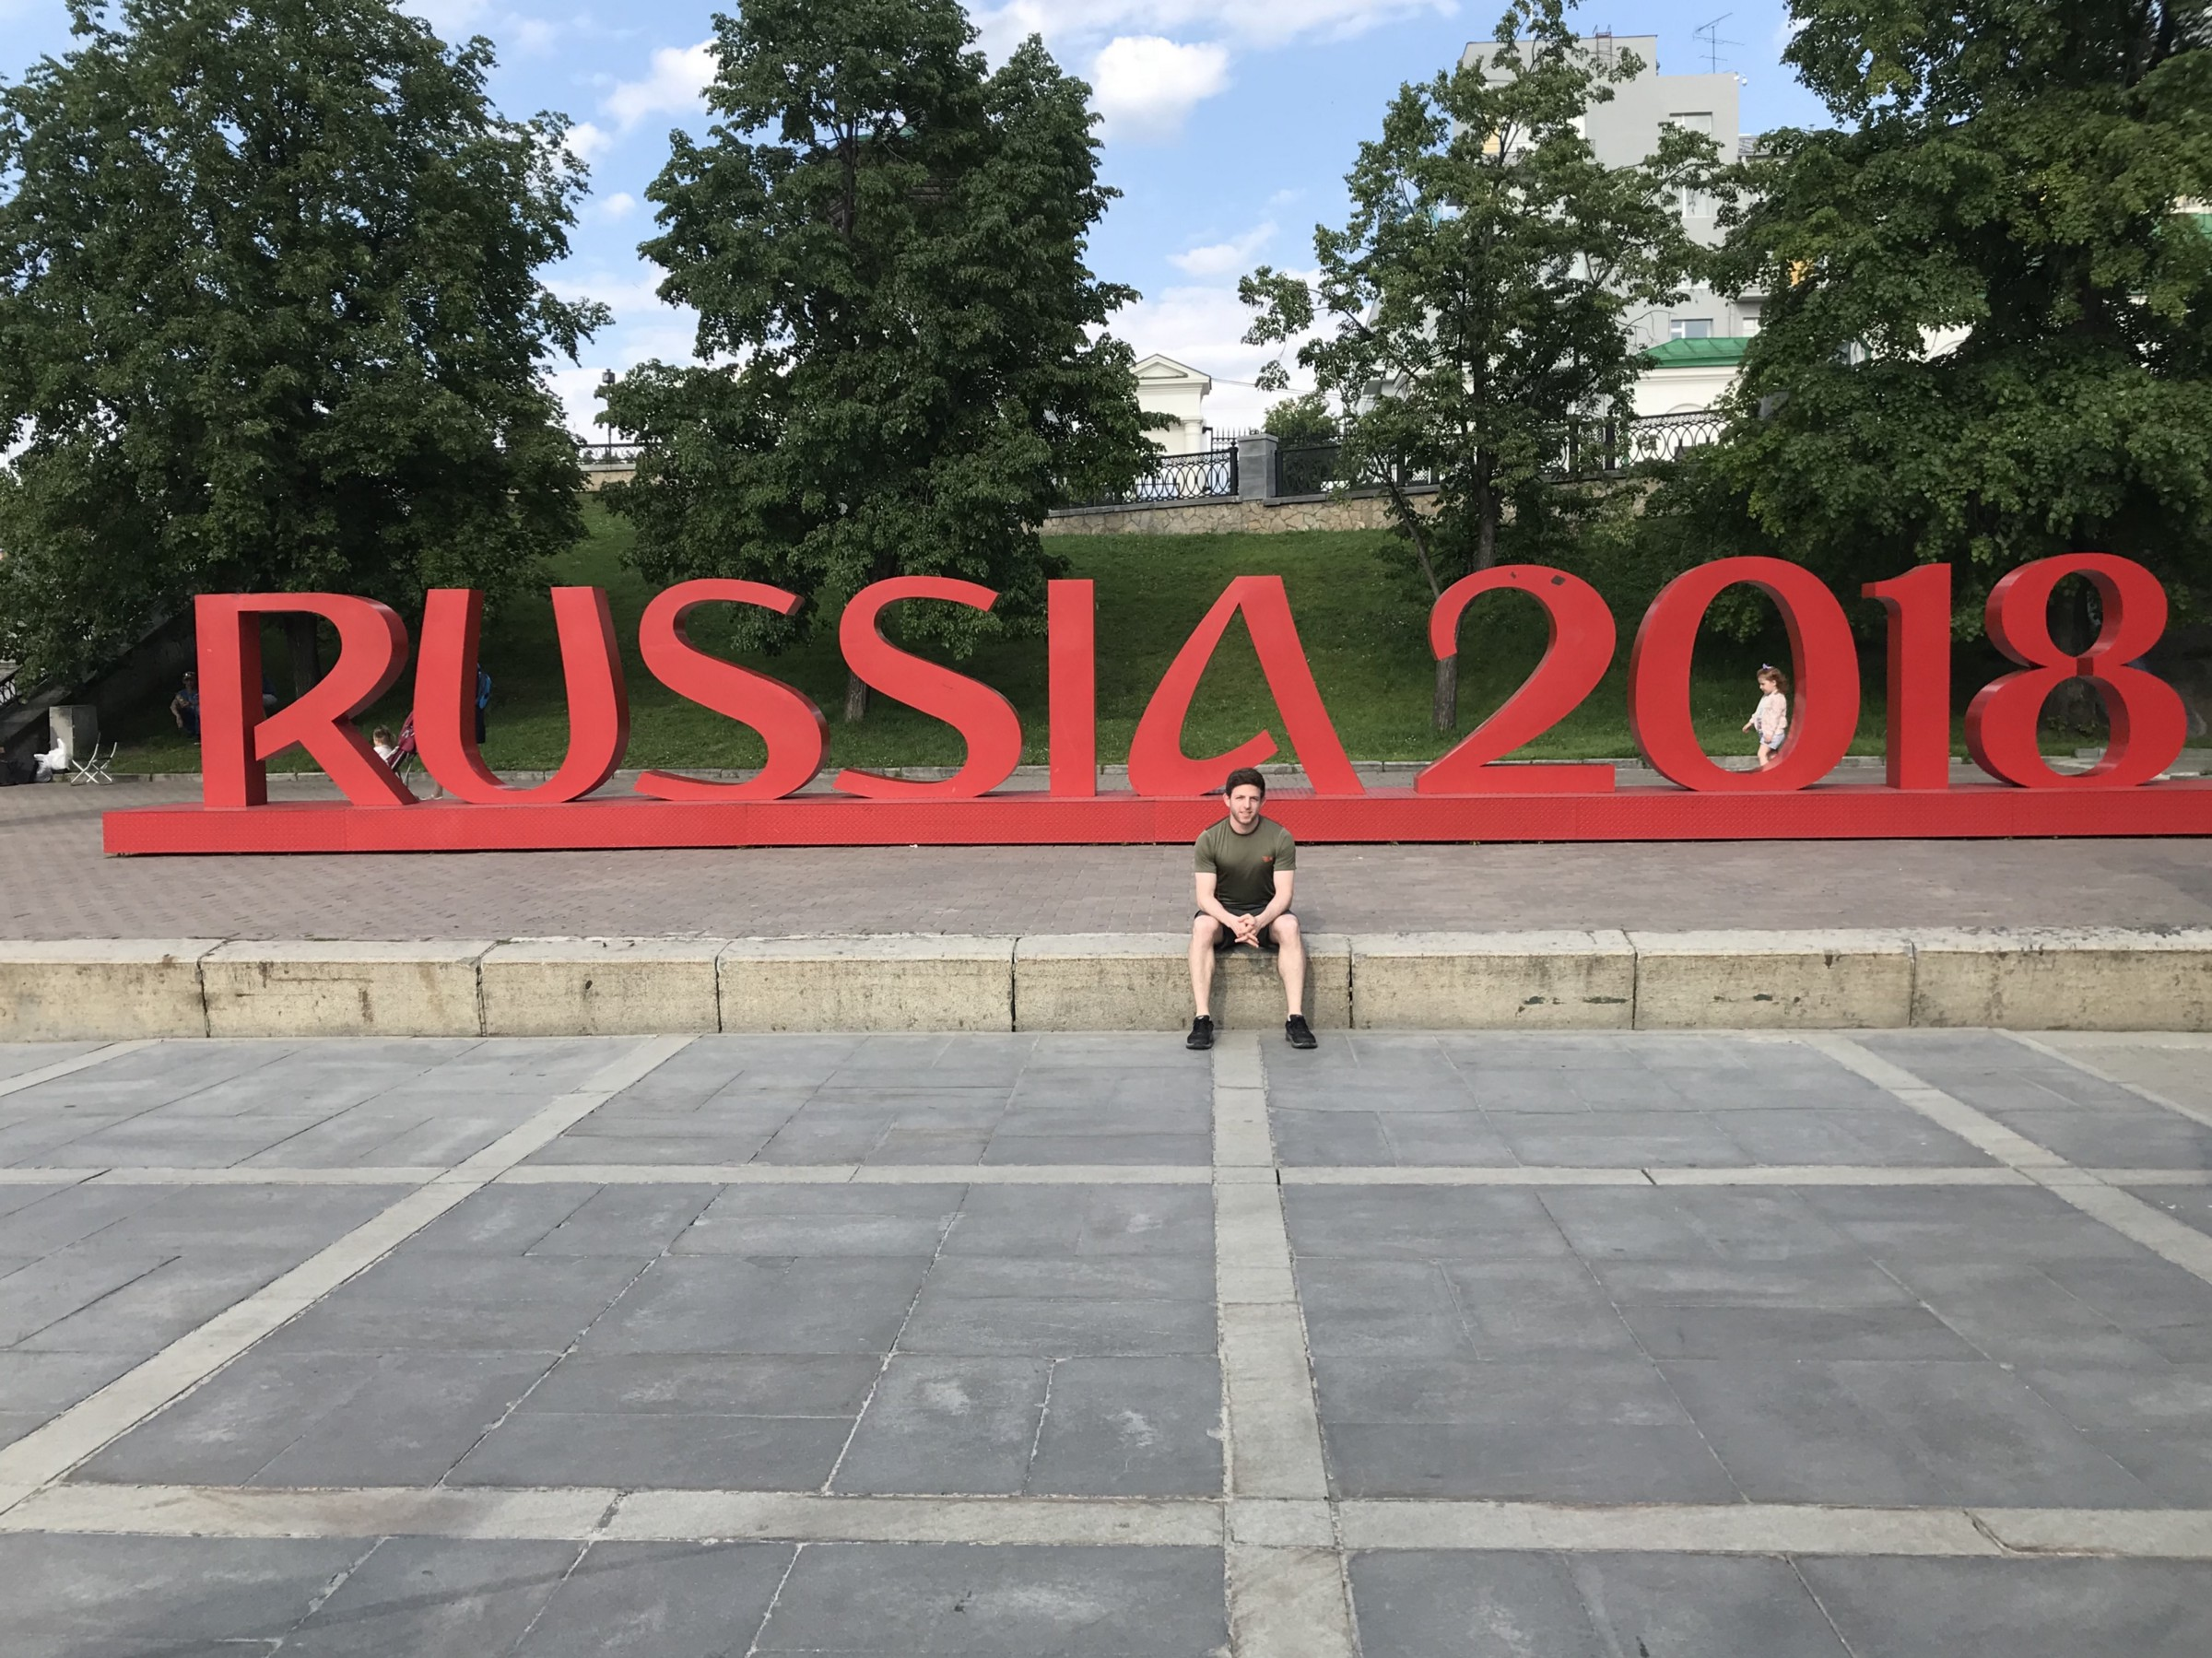 """Posing in front of a """"Russia 2018"""" sign that was put up for the World Cup."""